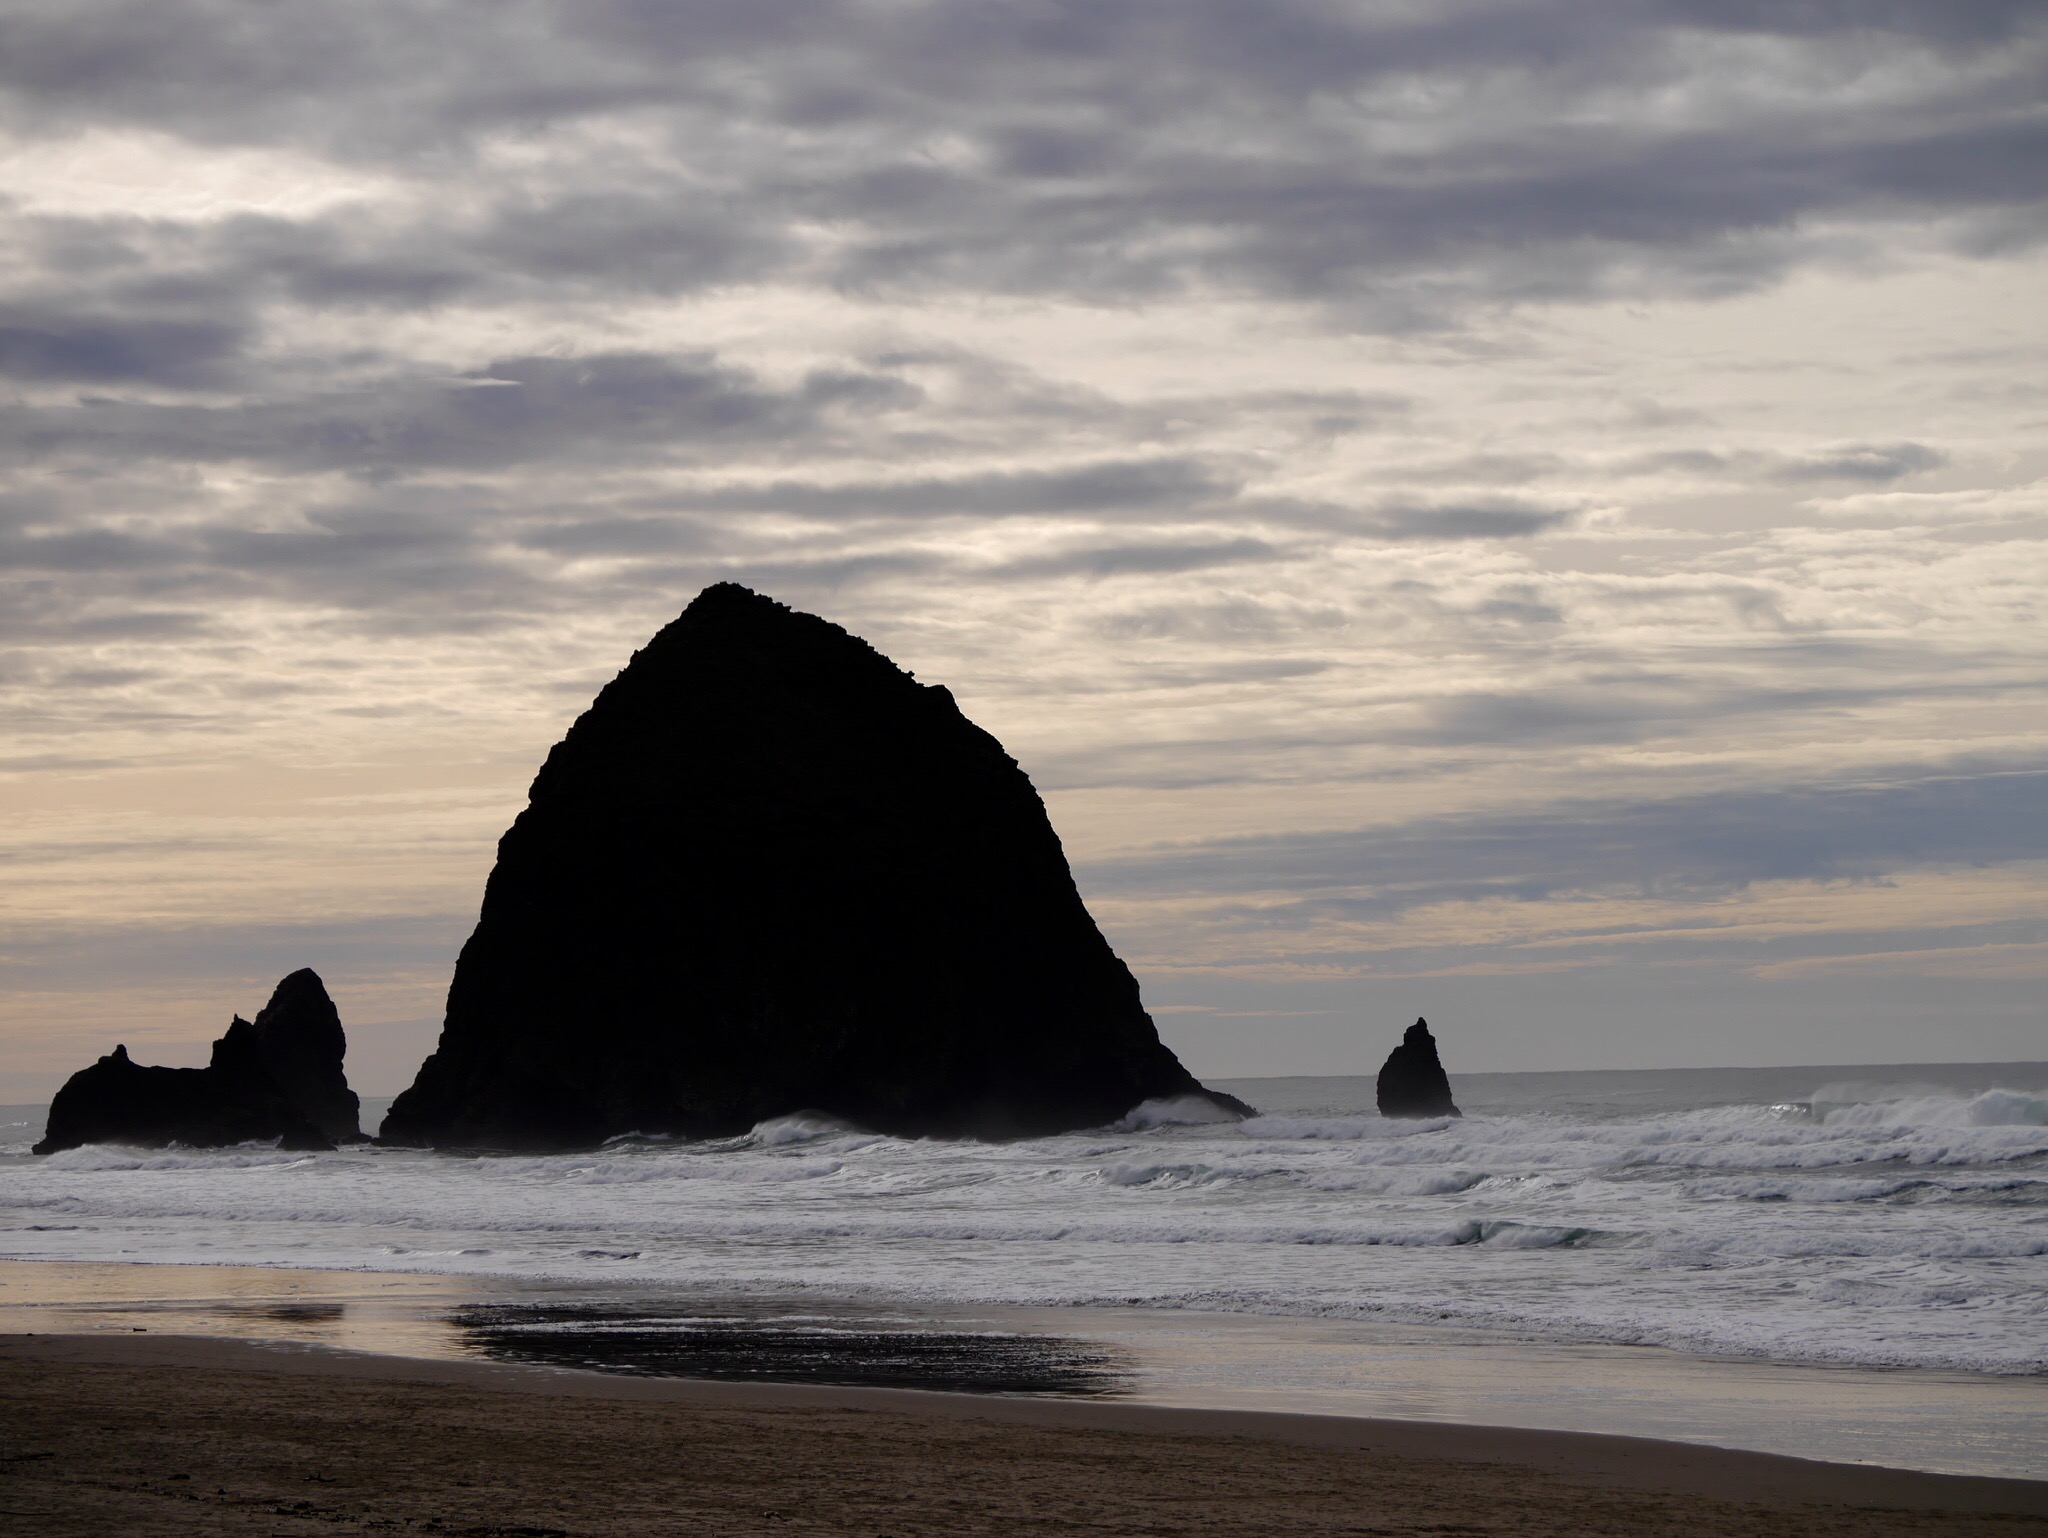 Haystack Rock in Cannon Beach, OR (photo by Cat Stelzer)